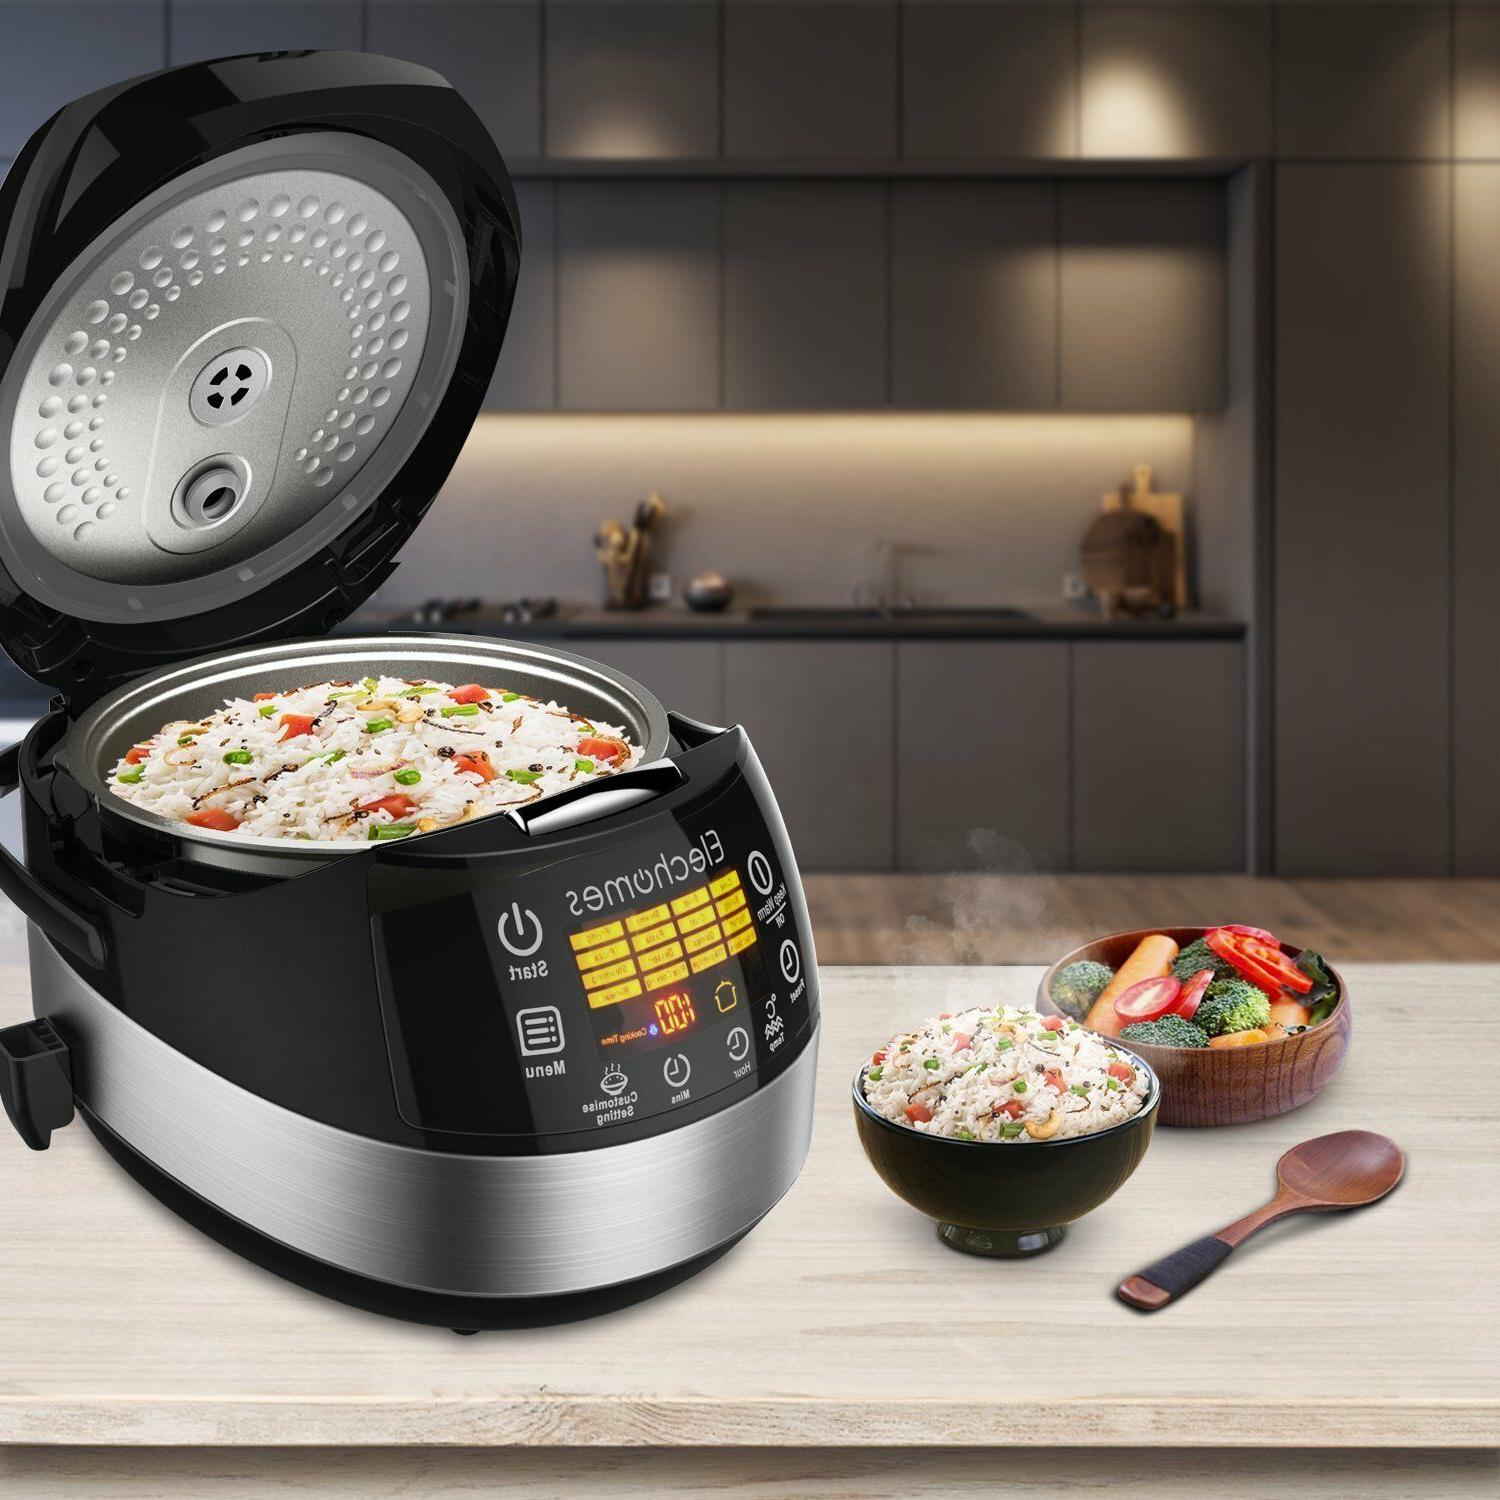 LED Touch Rice Cooker - Elechomes CR502 10 Rice